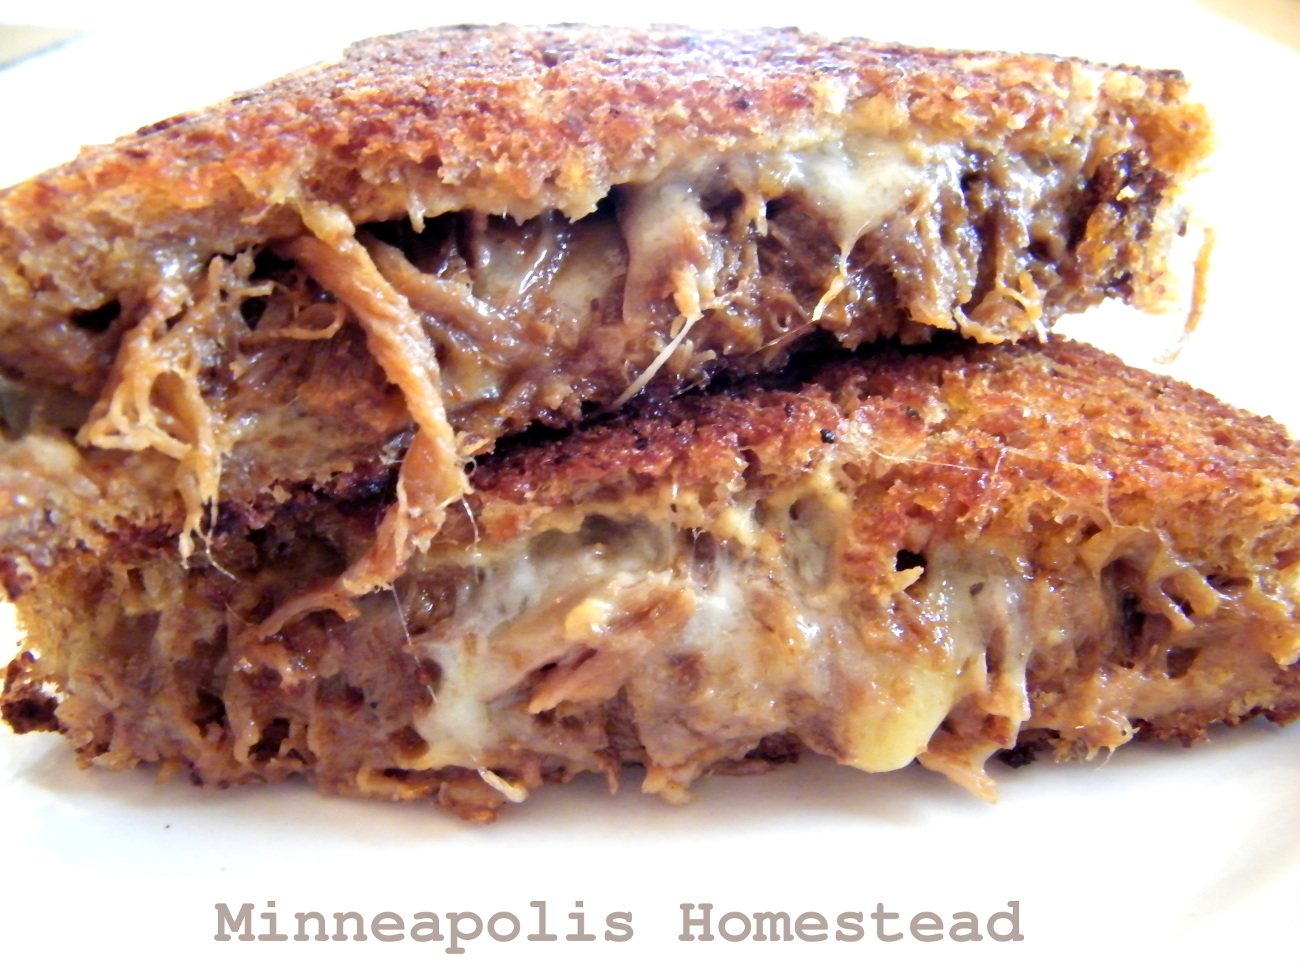 pulled+pork+roast+pasture+raised+BBQ+Barbeque+cheese+grill+grilled ...